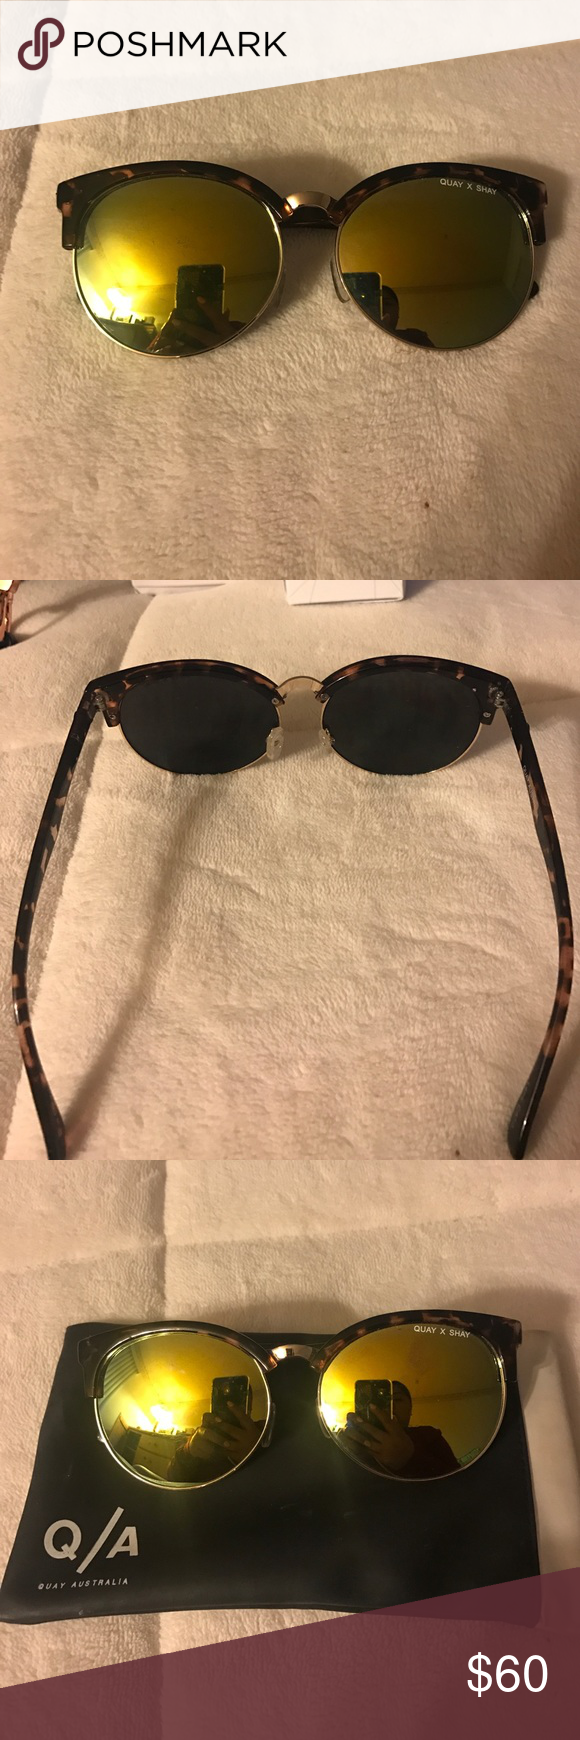 "Quay x Shay ""Vida"" sunglasses Barely worn Quay x Shay ""Vida"" sunglasses Quay Australia Accessories Sunglasses"